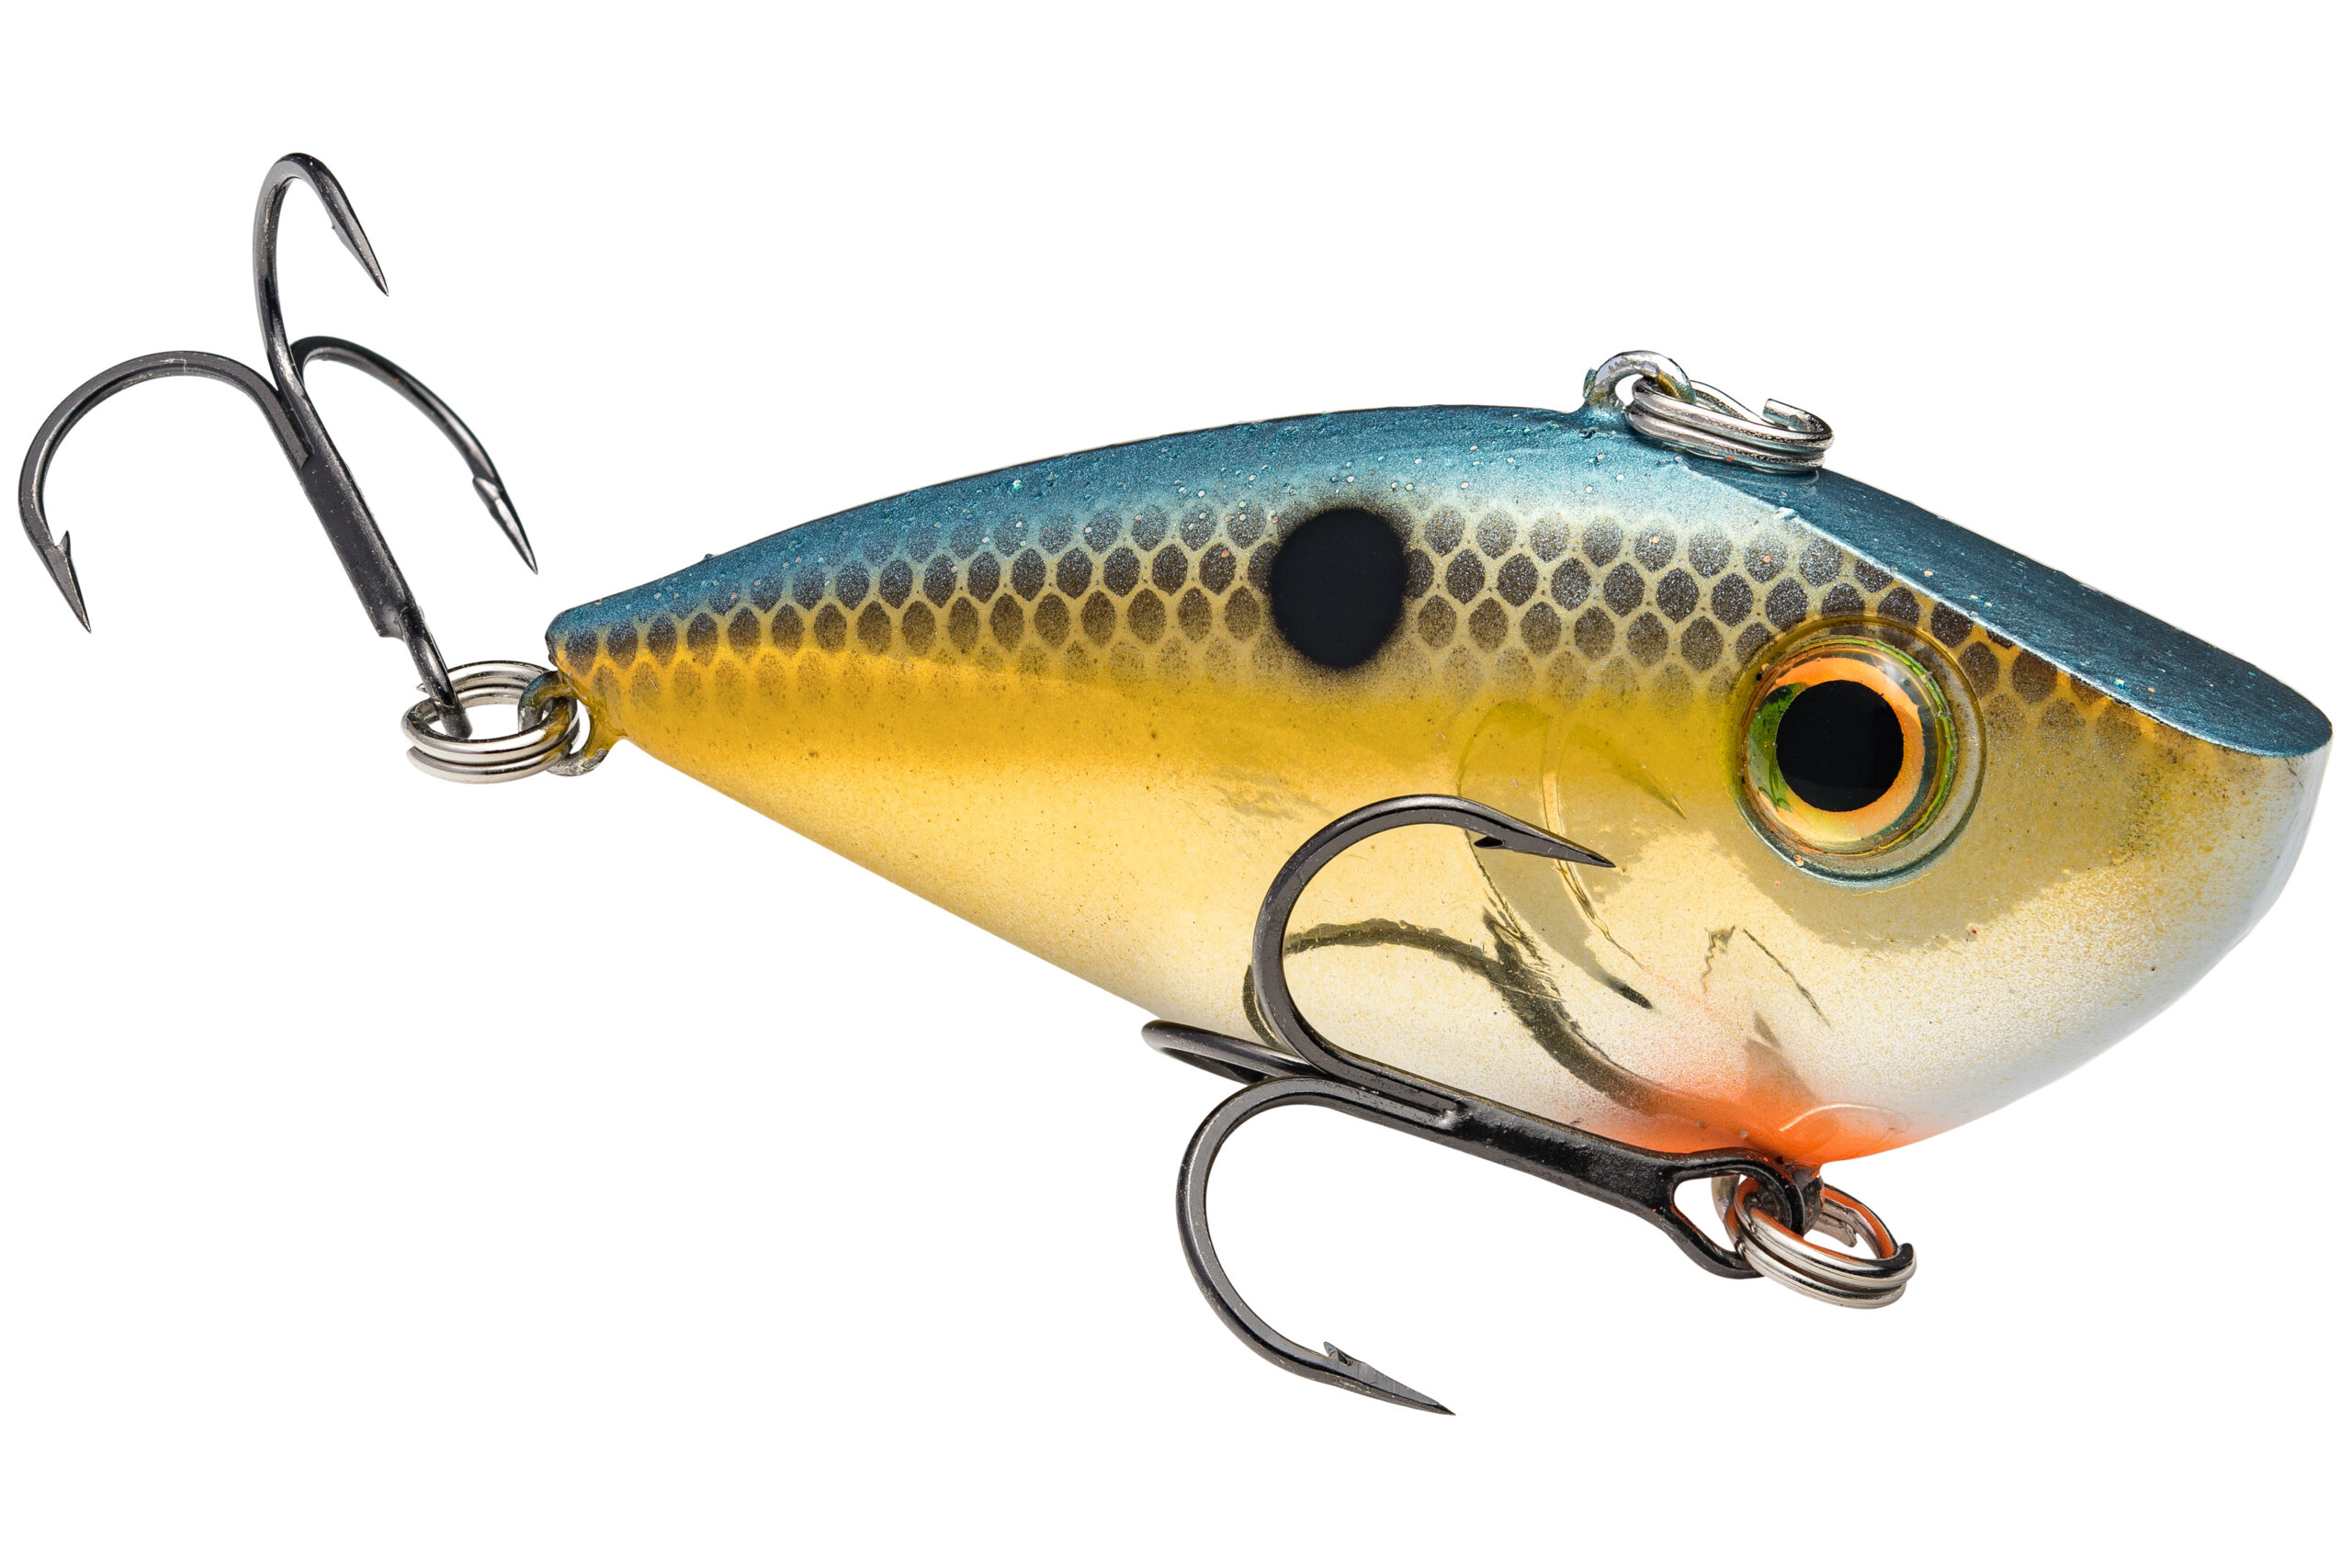 Strike King Lures – Crankbaits – Lipless Rattle Trap – Red Eyed Shad - 1/4oz - REYESD14-620 - Gold Sexy Shad